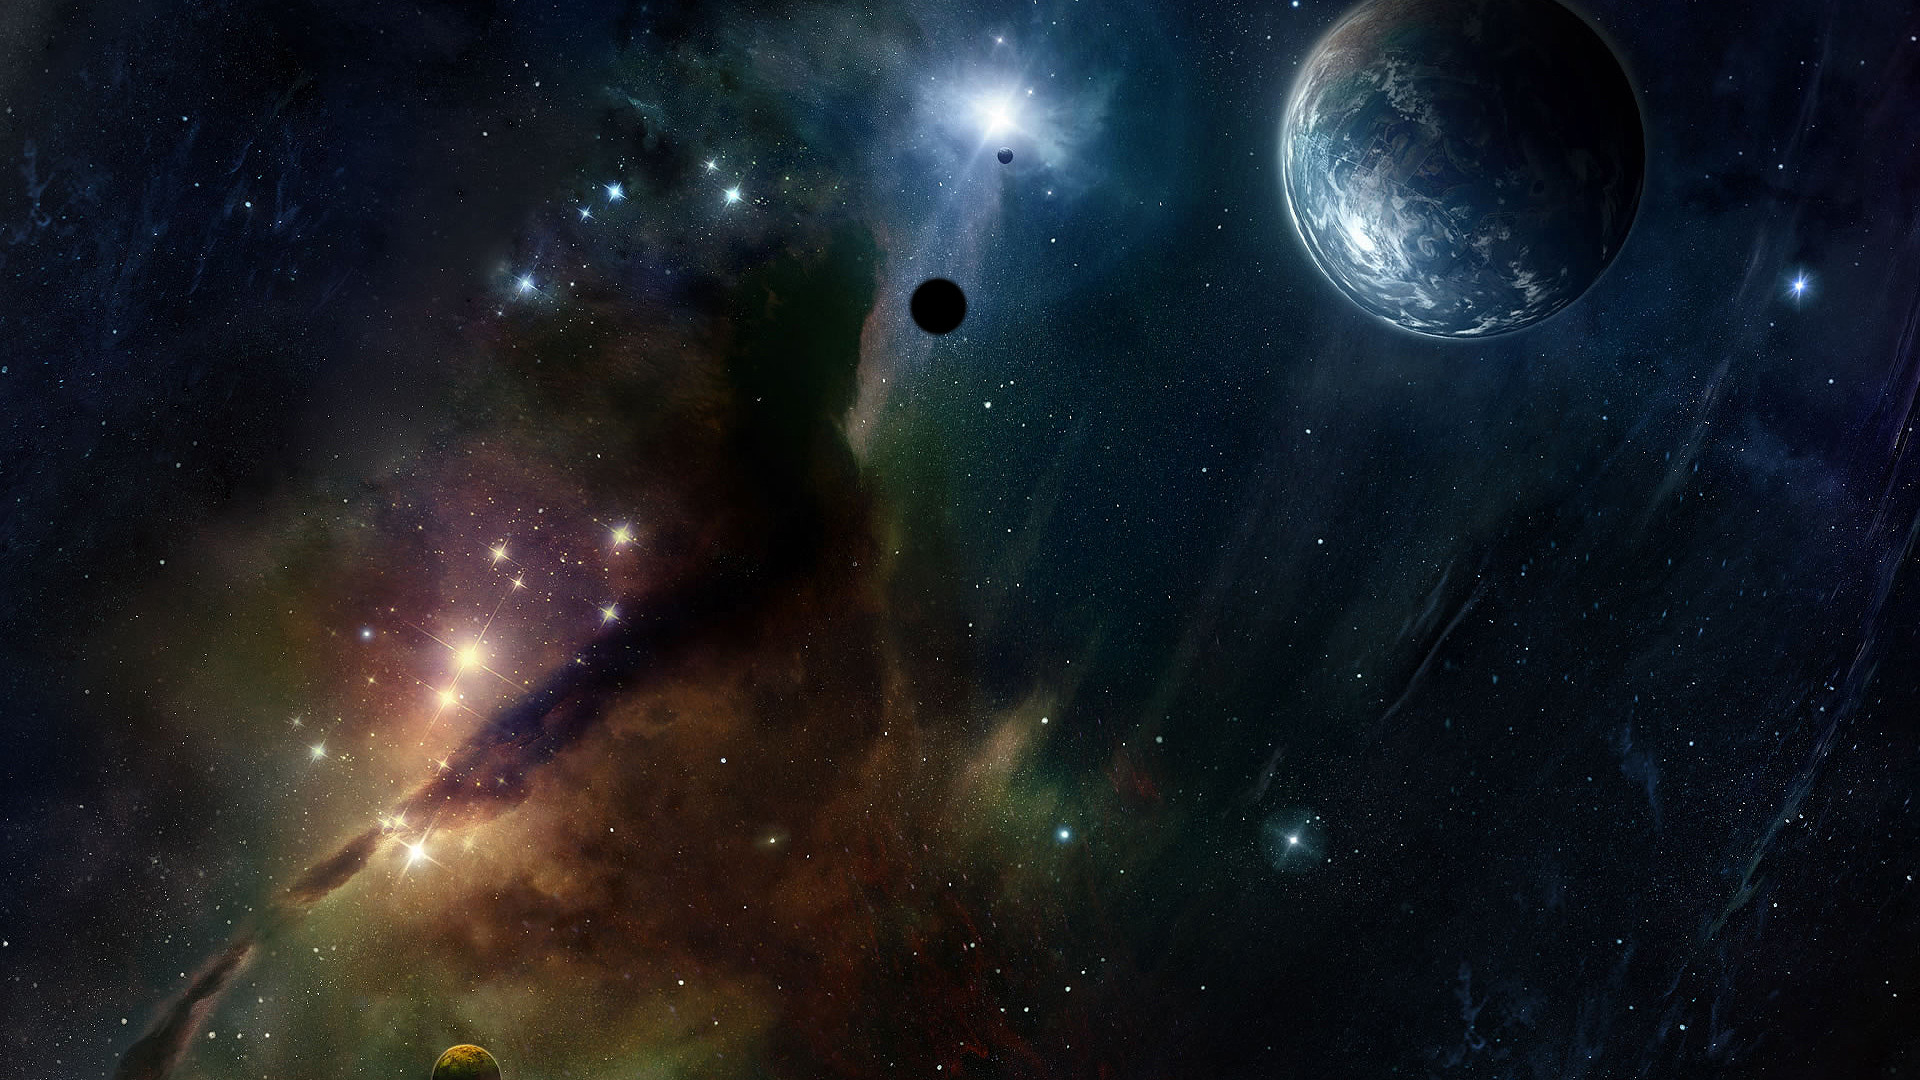 Space Hd Wallpaper 1080p Nasa (page 2) – Pics about space